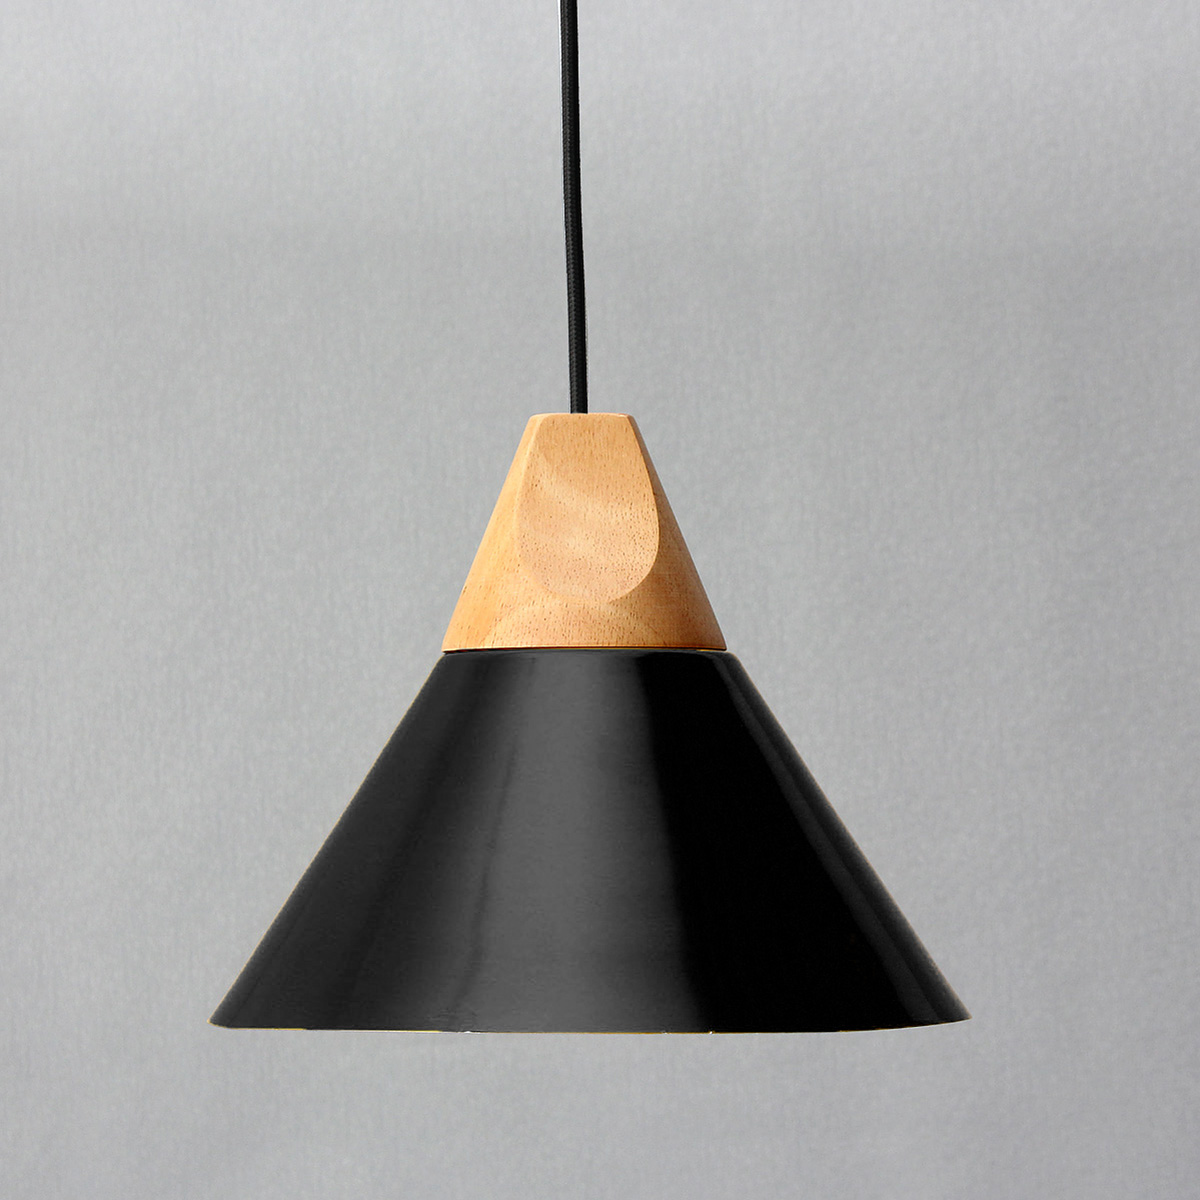 Wooden Light Pendants Diameter 25cm Modern Wooden Pendant Ceiling Hanging Lamp